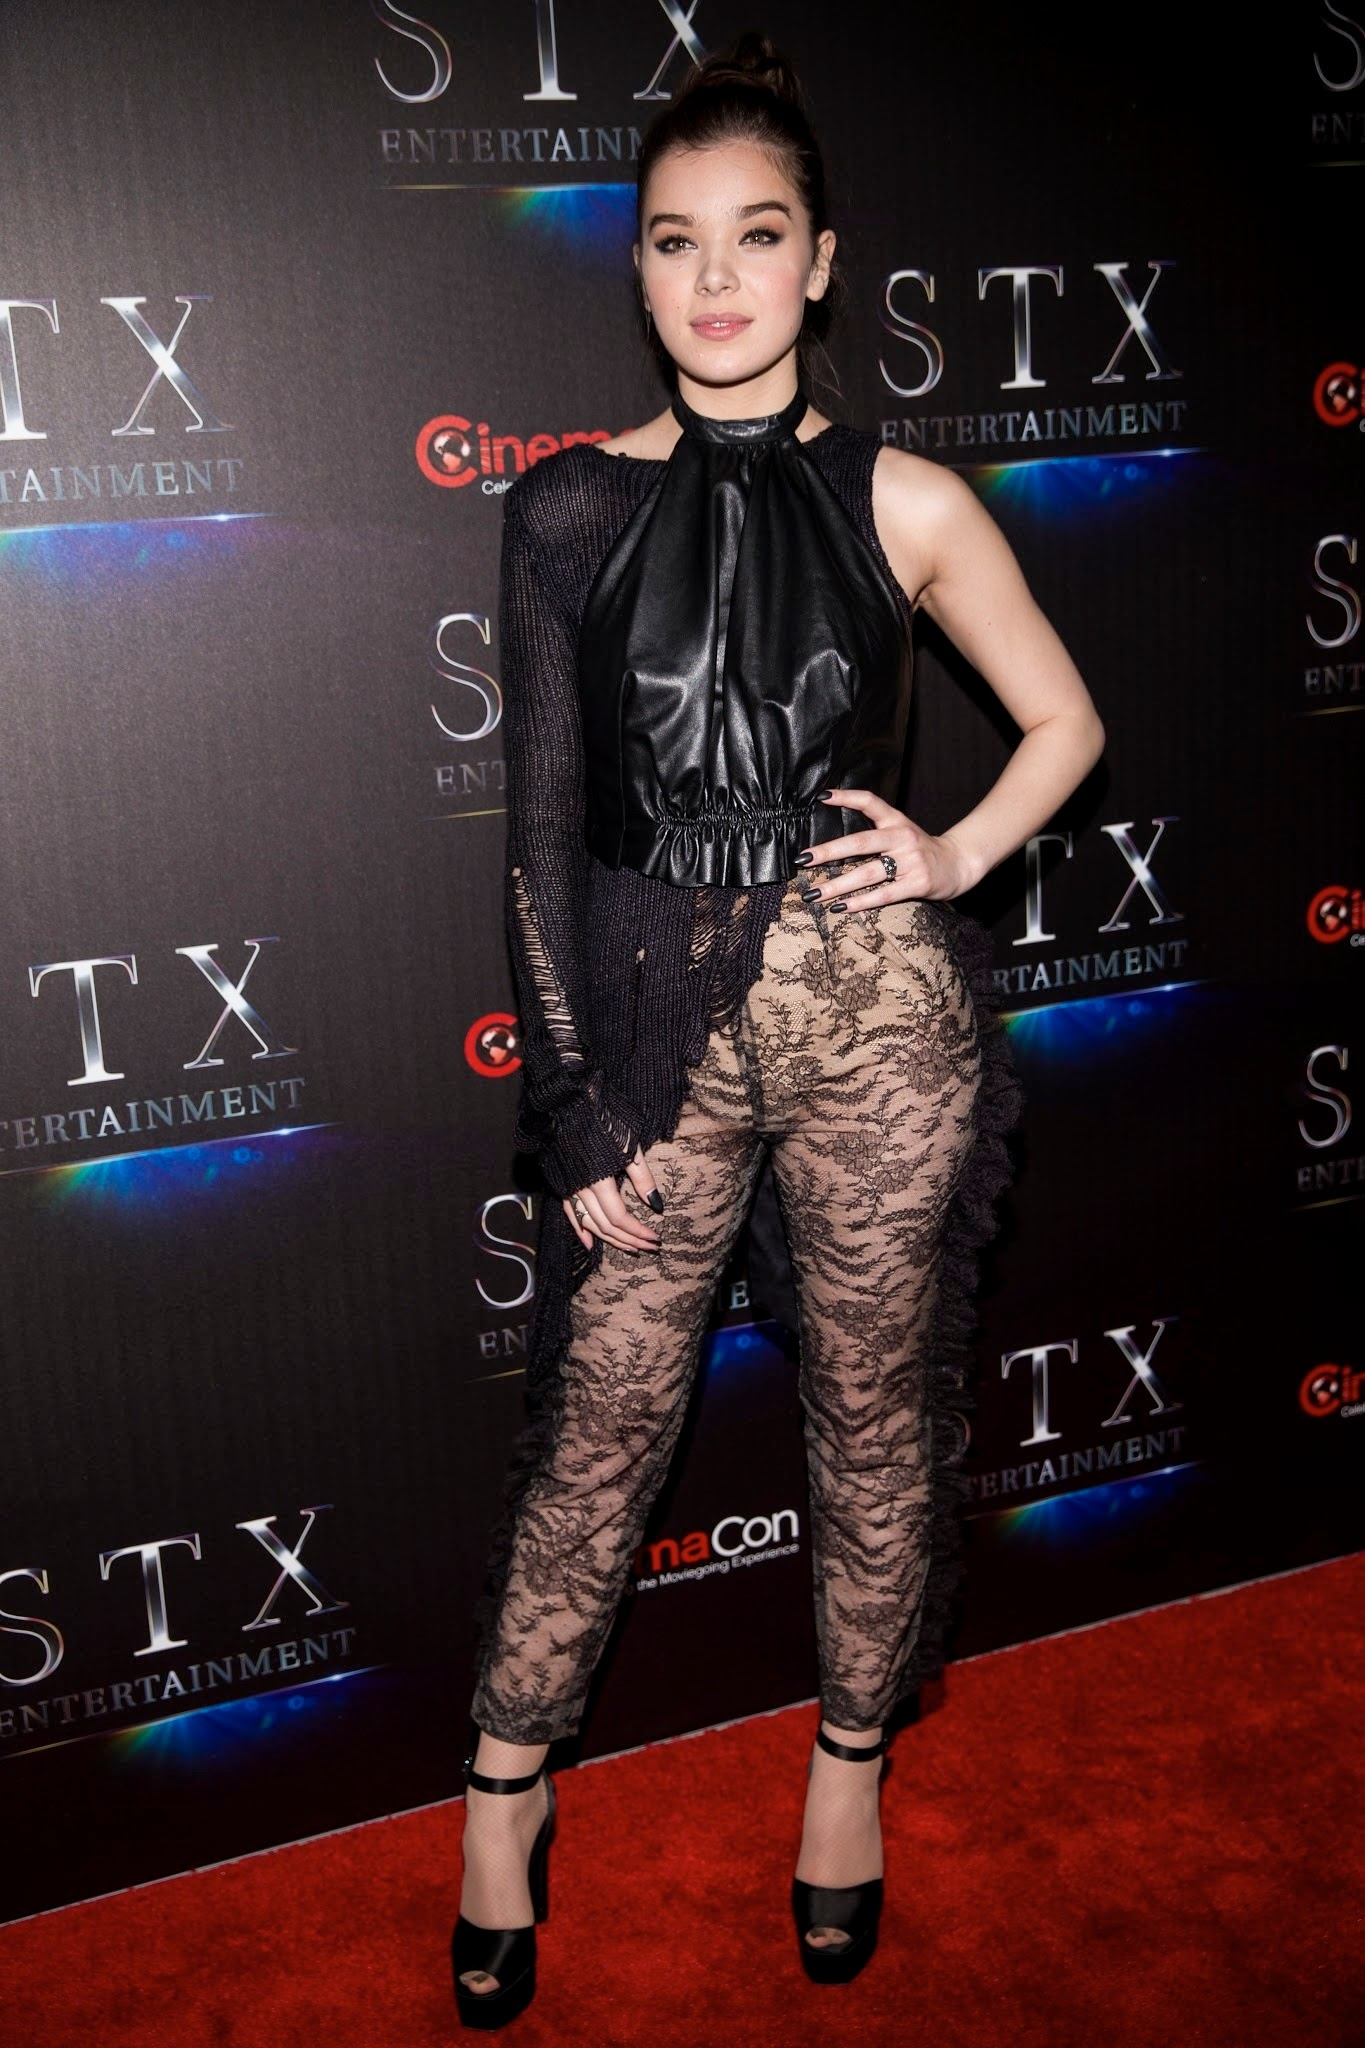 Hailee Steinfeld in a see through outfit at CinemaCon in Las Vegas ...